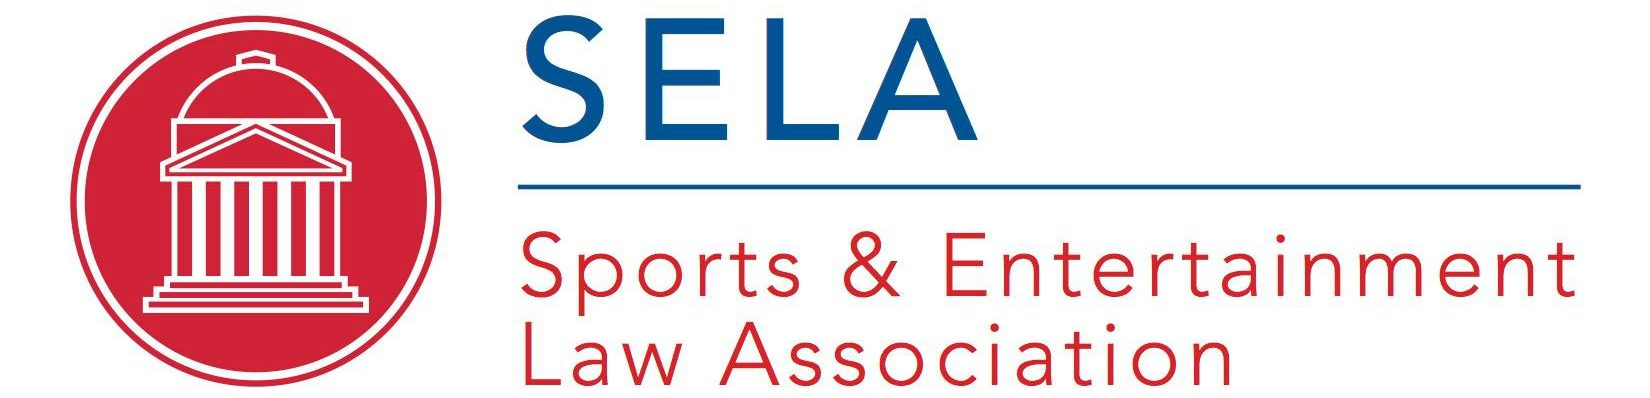 Welcome to the SMU SELA website!